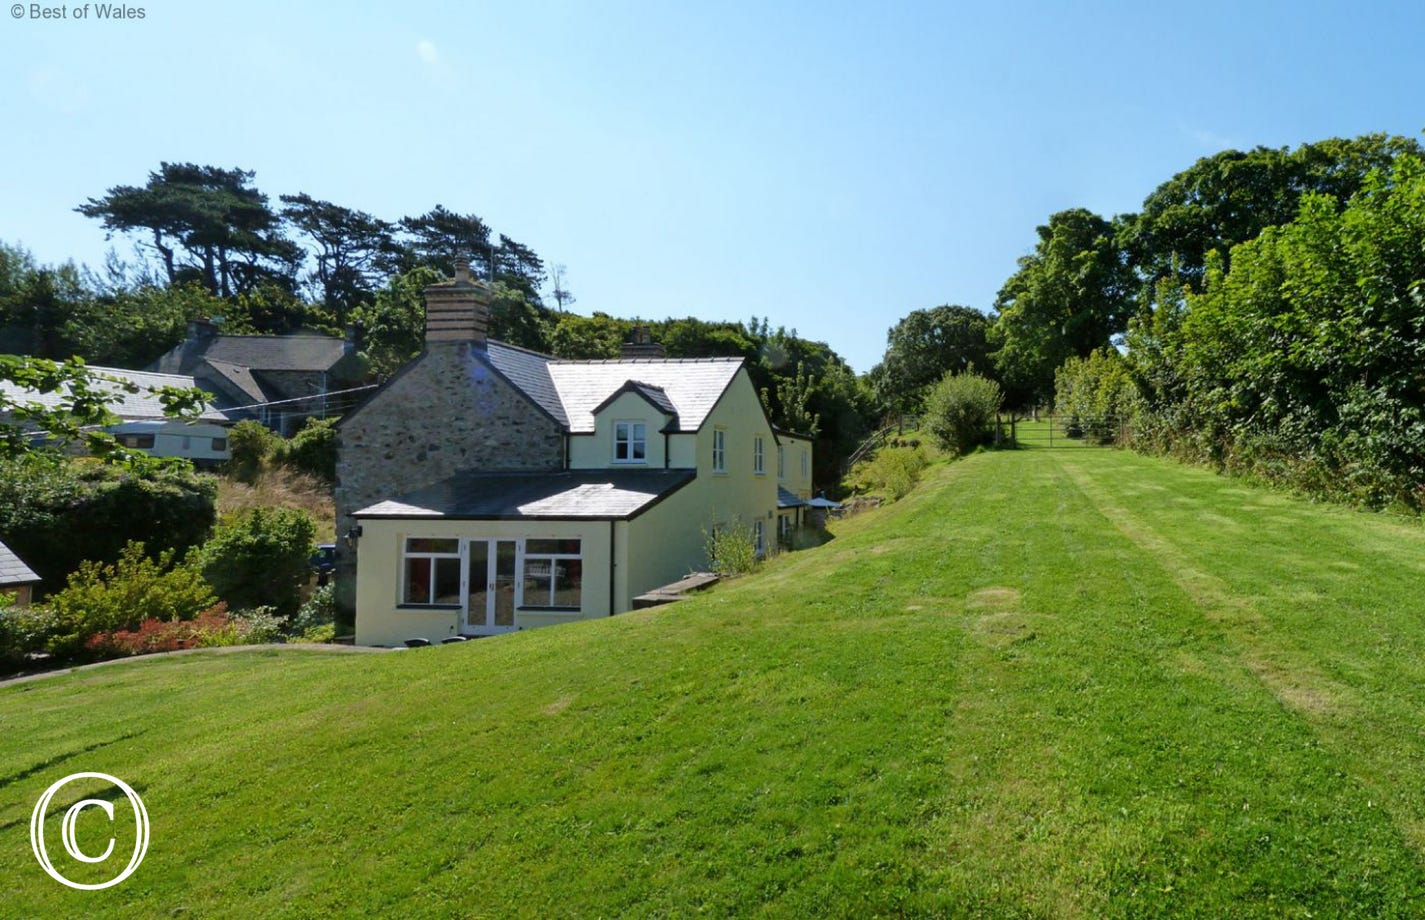 Large lawn area at rear of this Newport Holiday Cottage